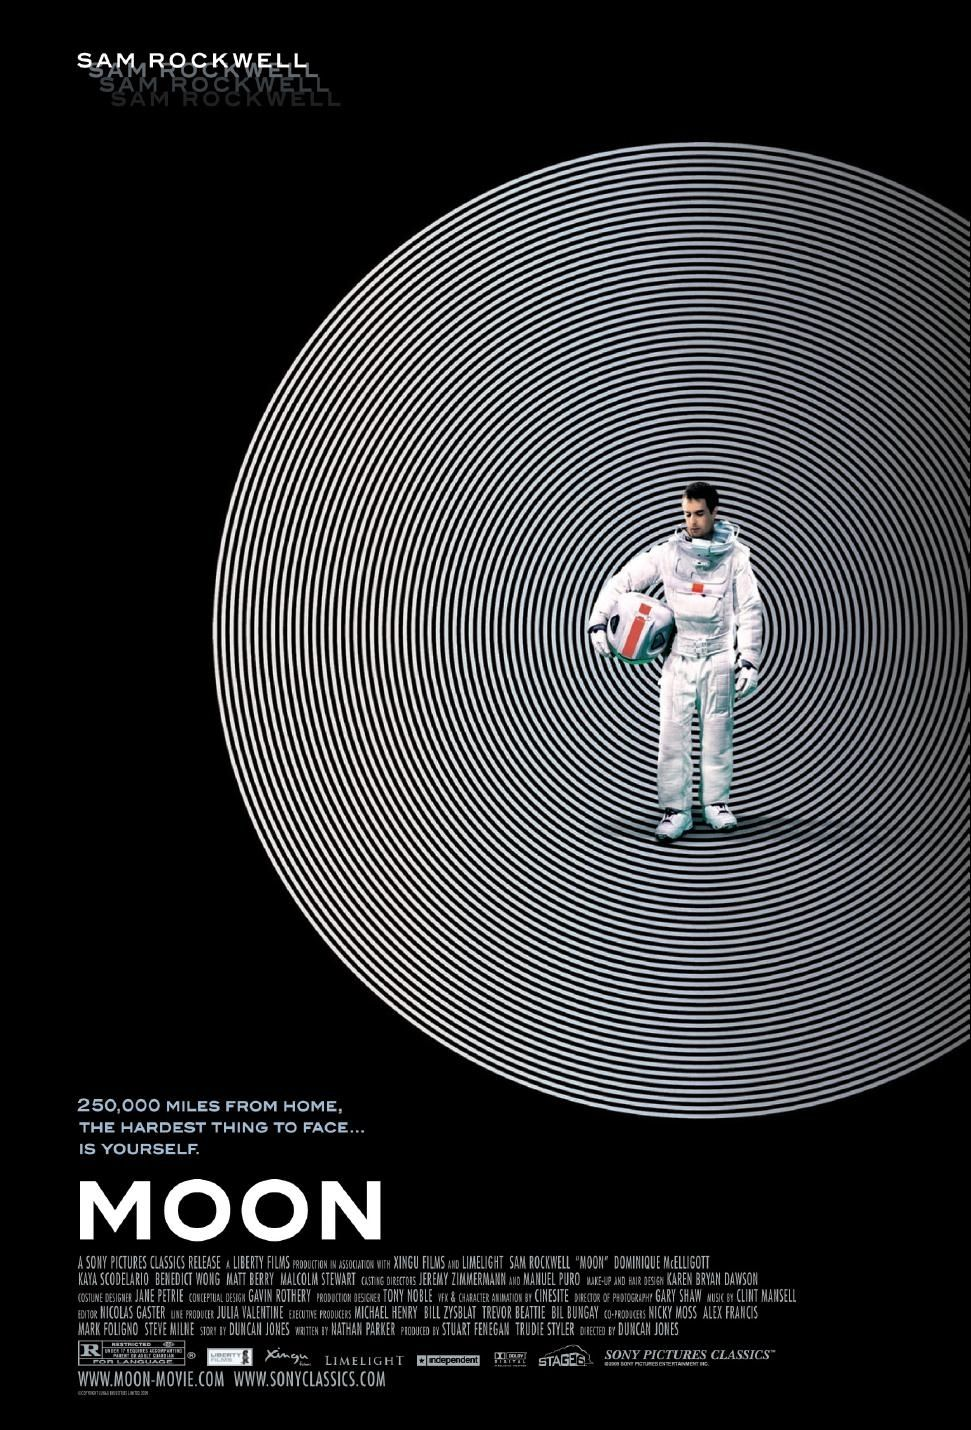 poster for Sam Rockwell movie Moon